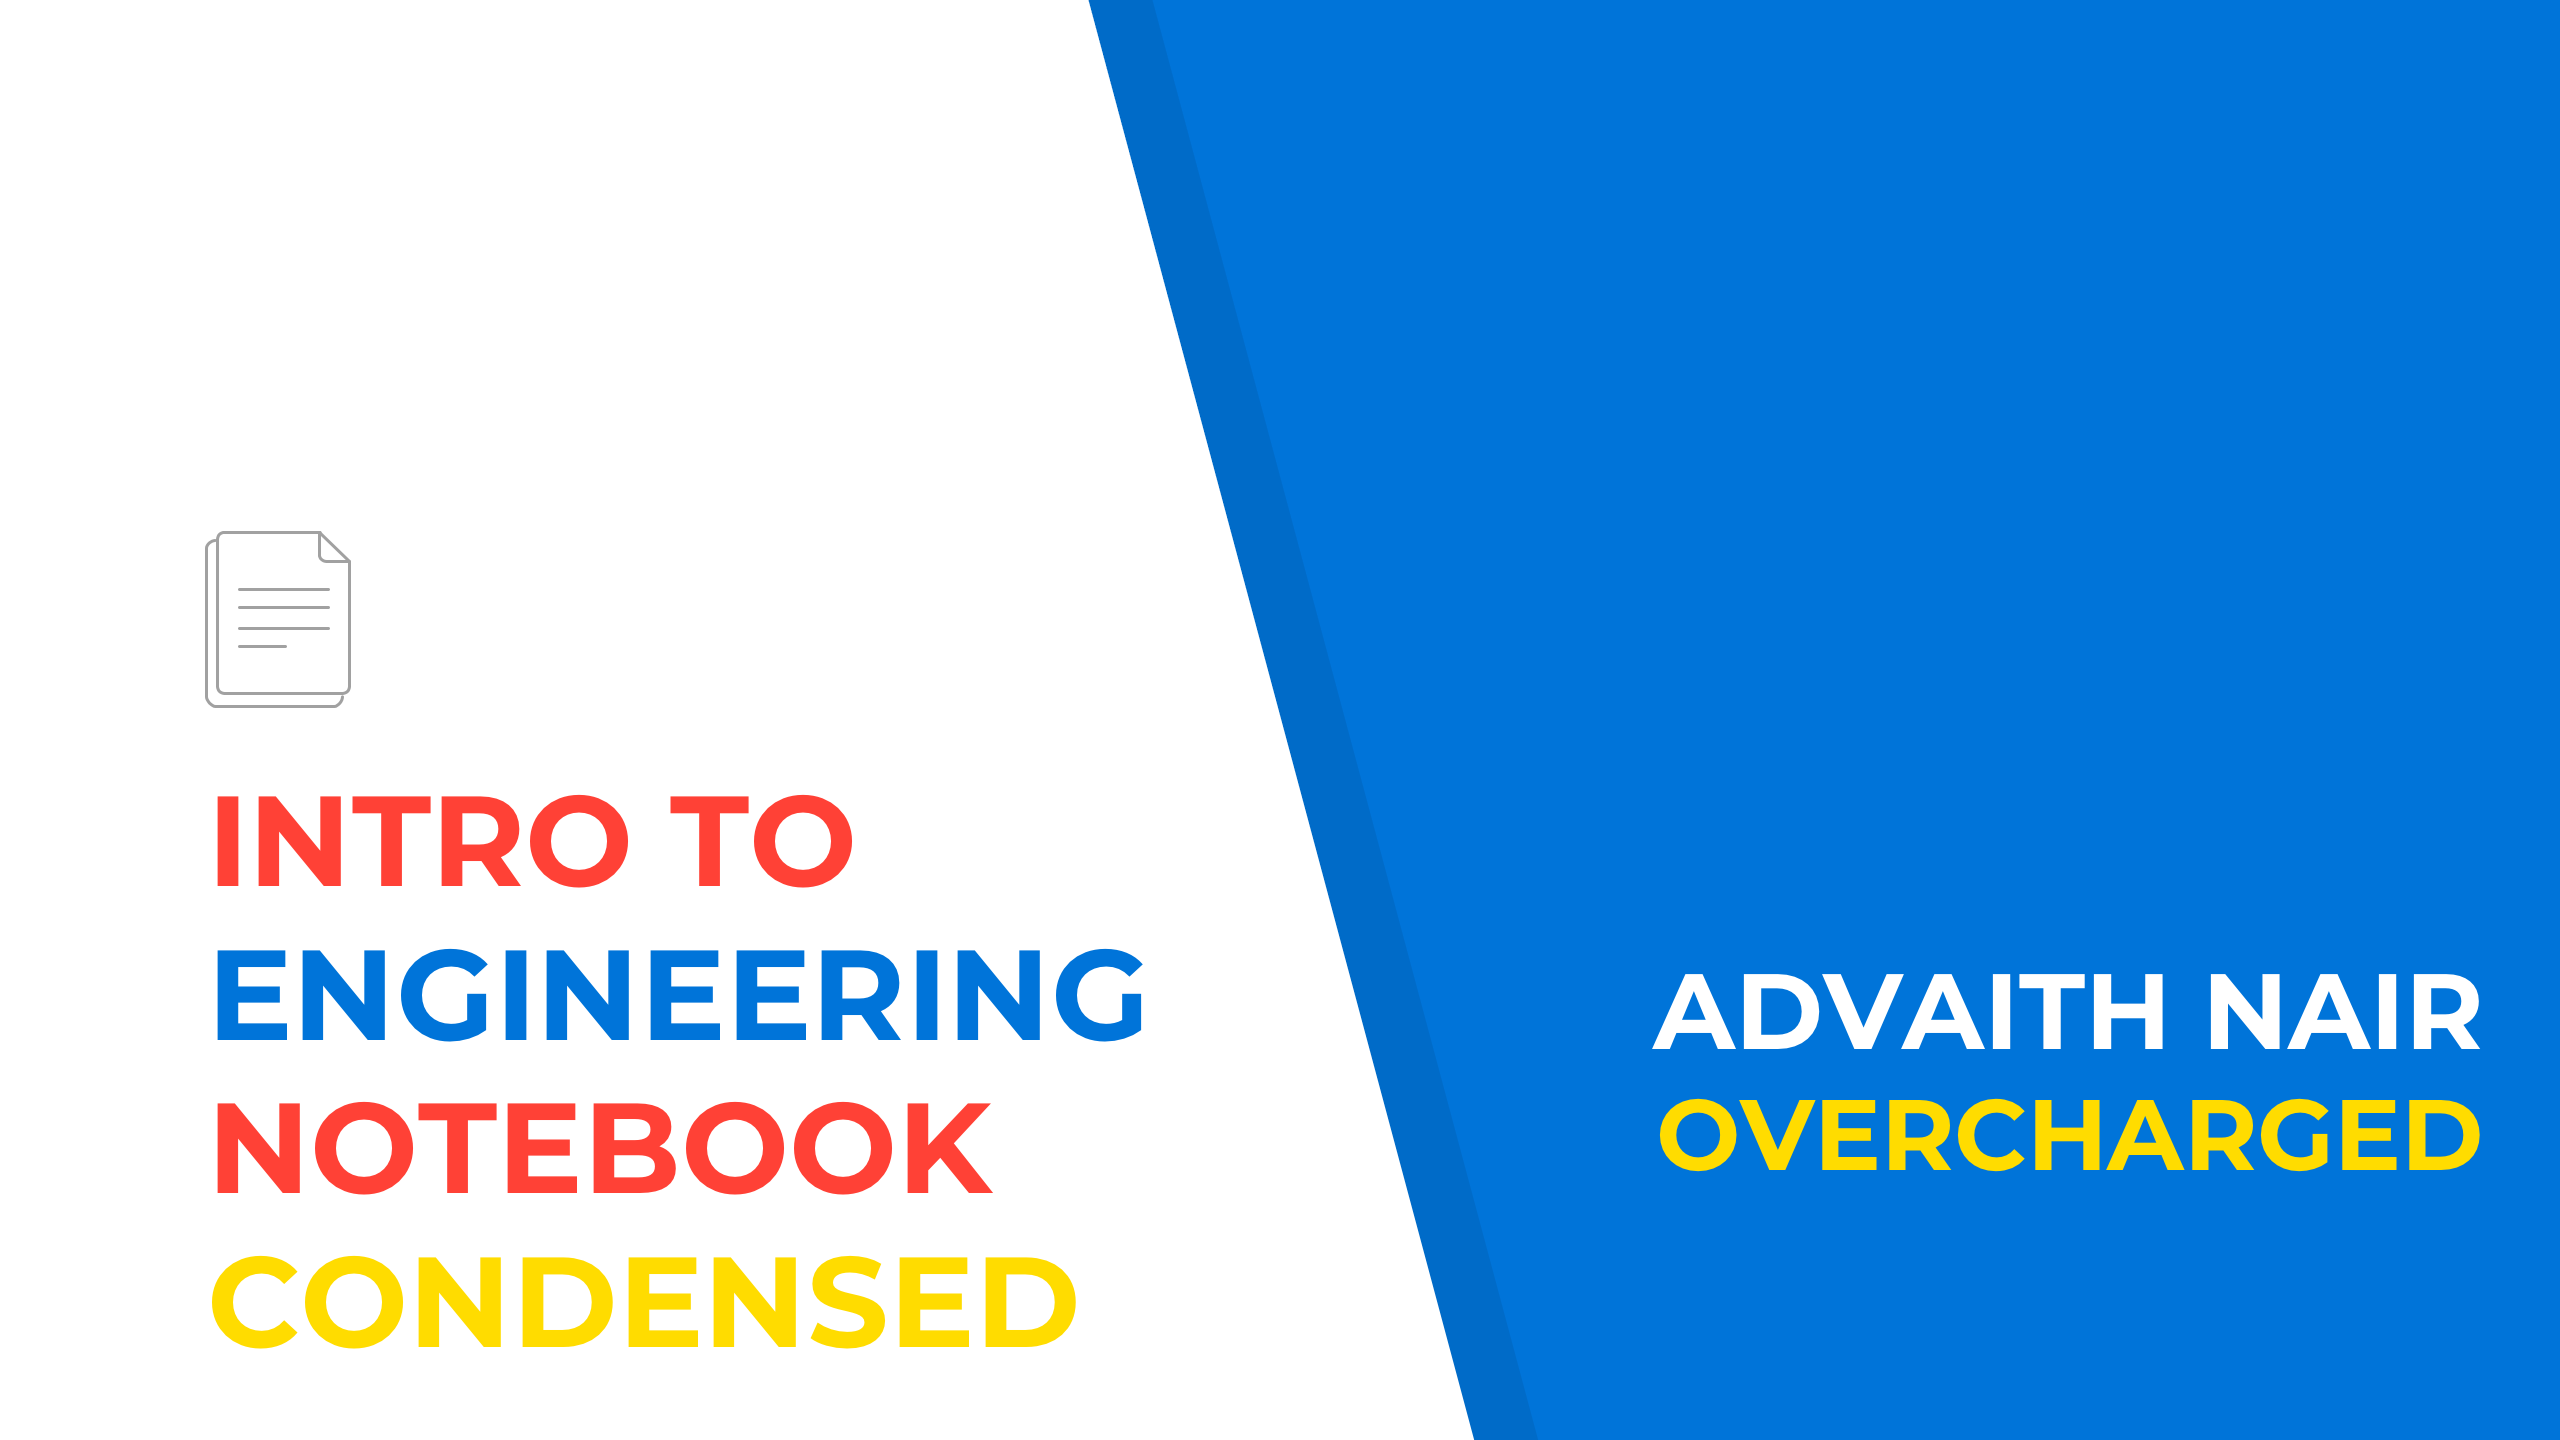 Intro to Engineering Notebook: Condensed